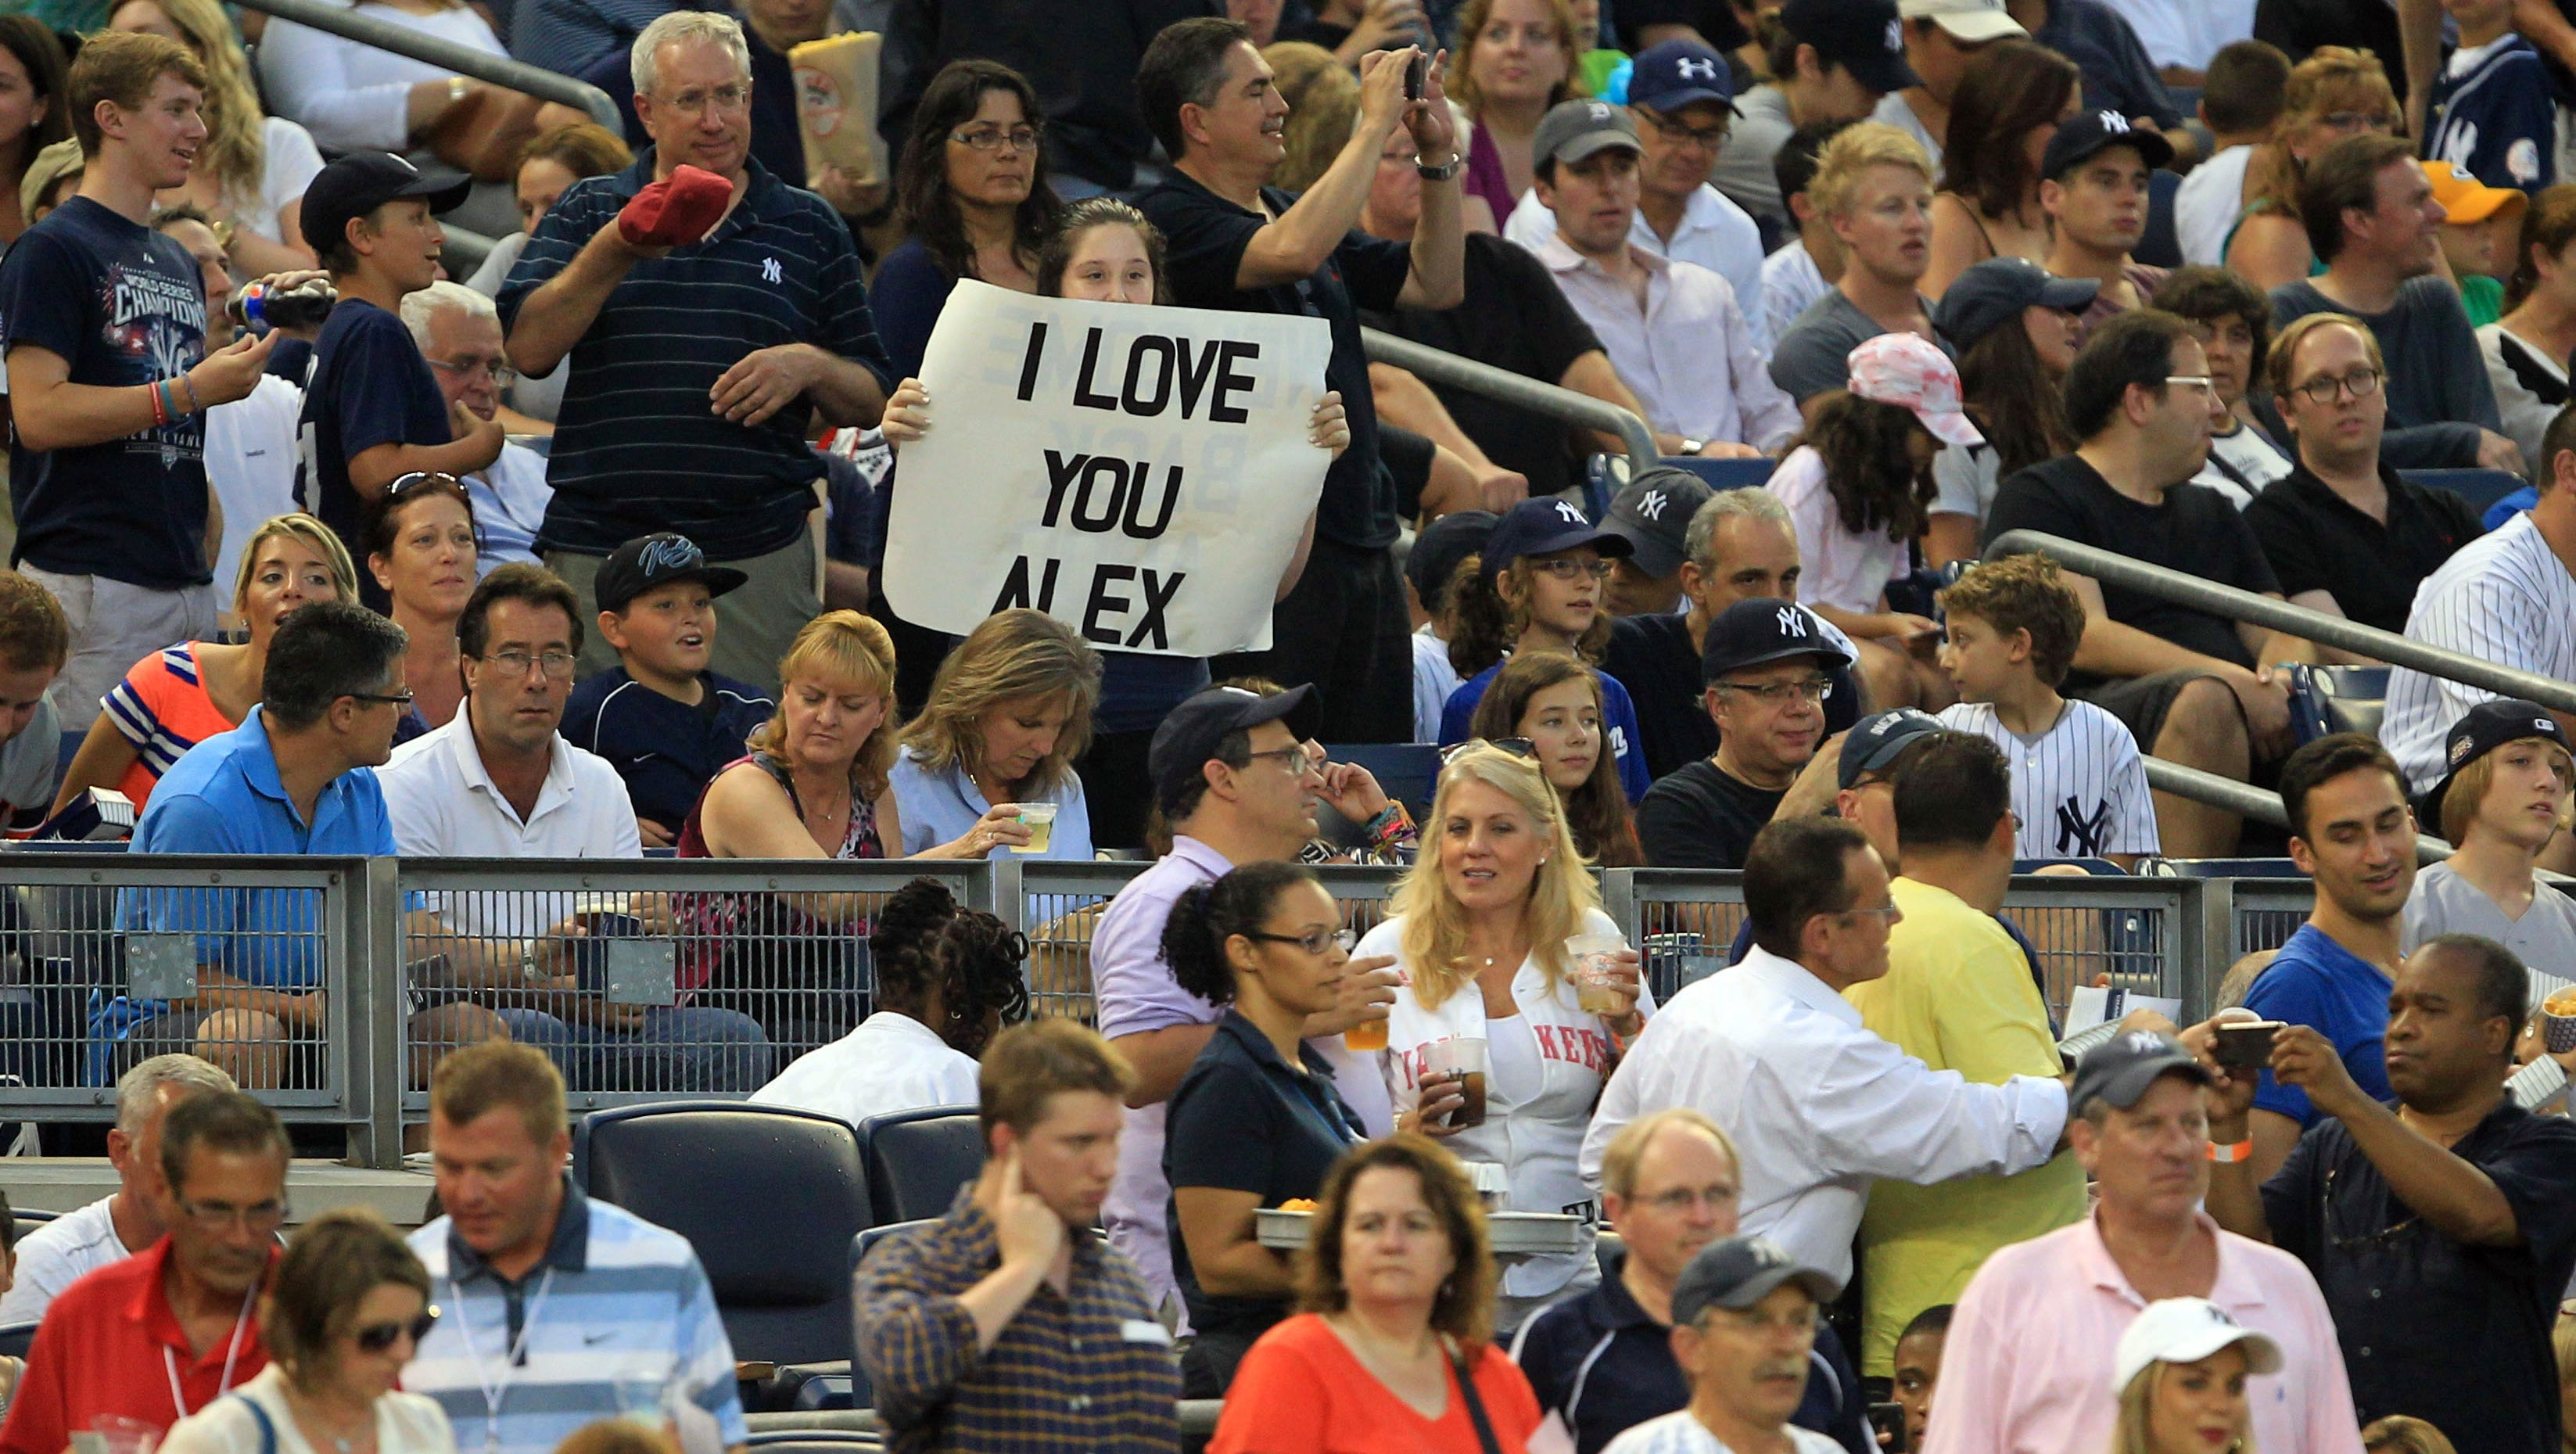 A fan shows support for New York Yankees third baseman Alex Rodriguez during the game against the Detroit Tigers at Yankee Stadium.